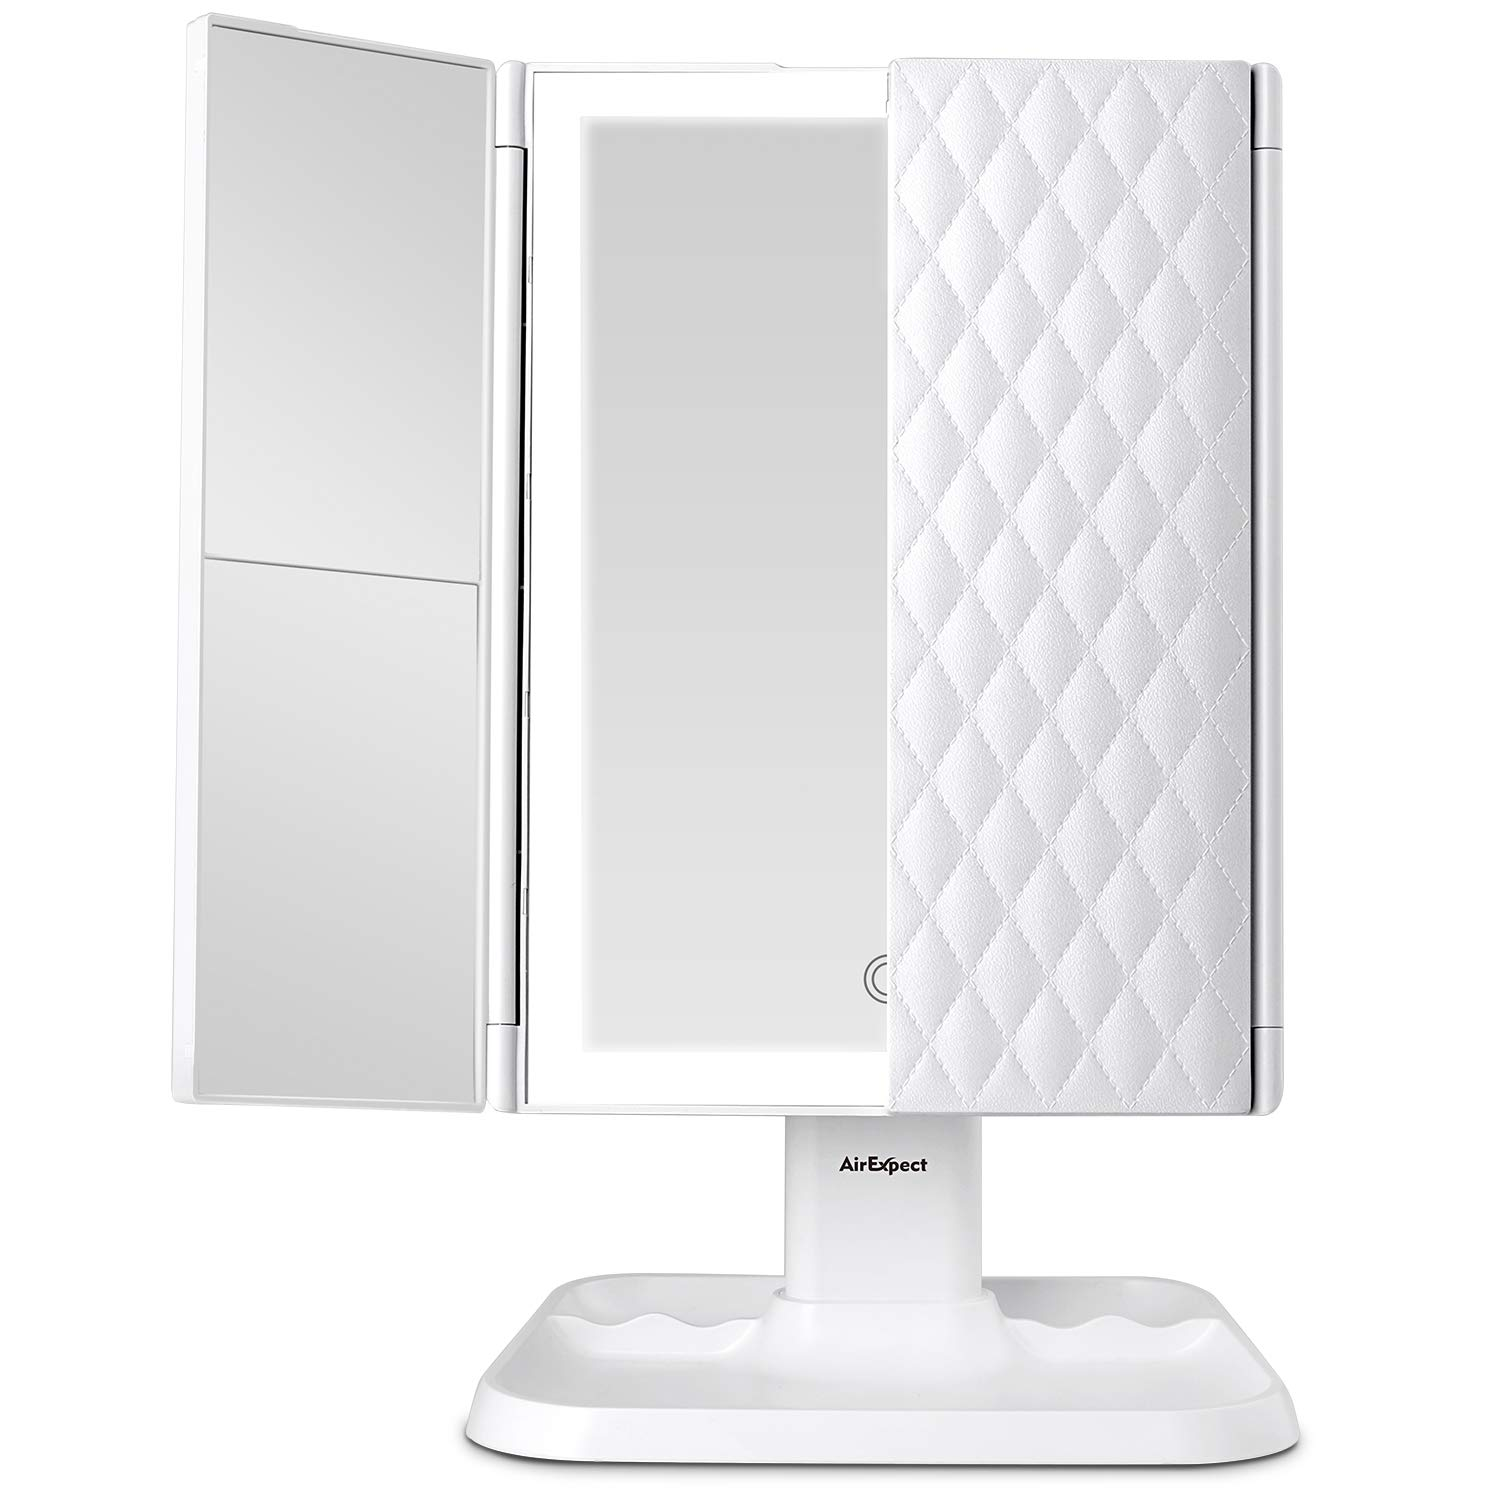 Makeup Mirror Vanity Mirror with Lights - 3 Color Lighting Modes 72 LED Trifold Mirror, Touch Control Design, 1x/2x/3x Magnification, Portable High Definition Cosmetic Lighted Up Mirror by AirExpect